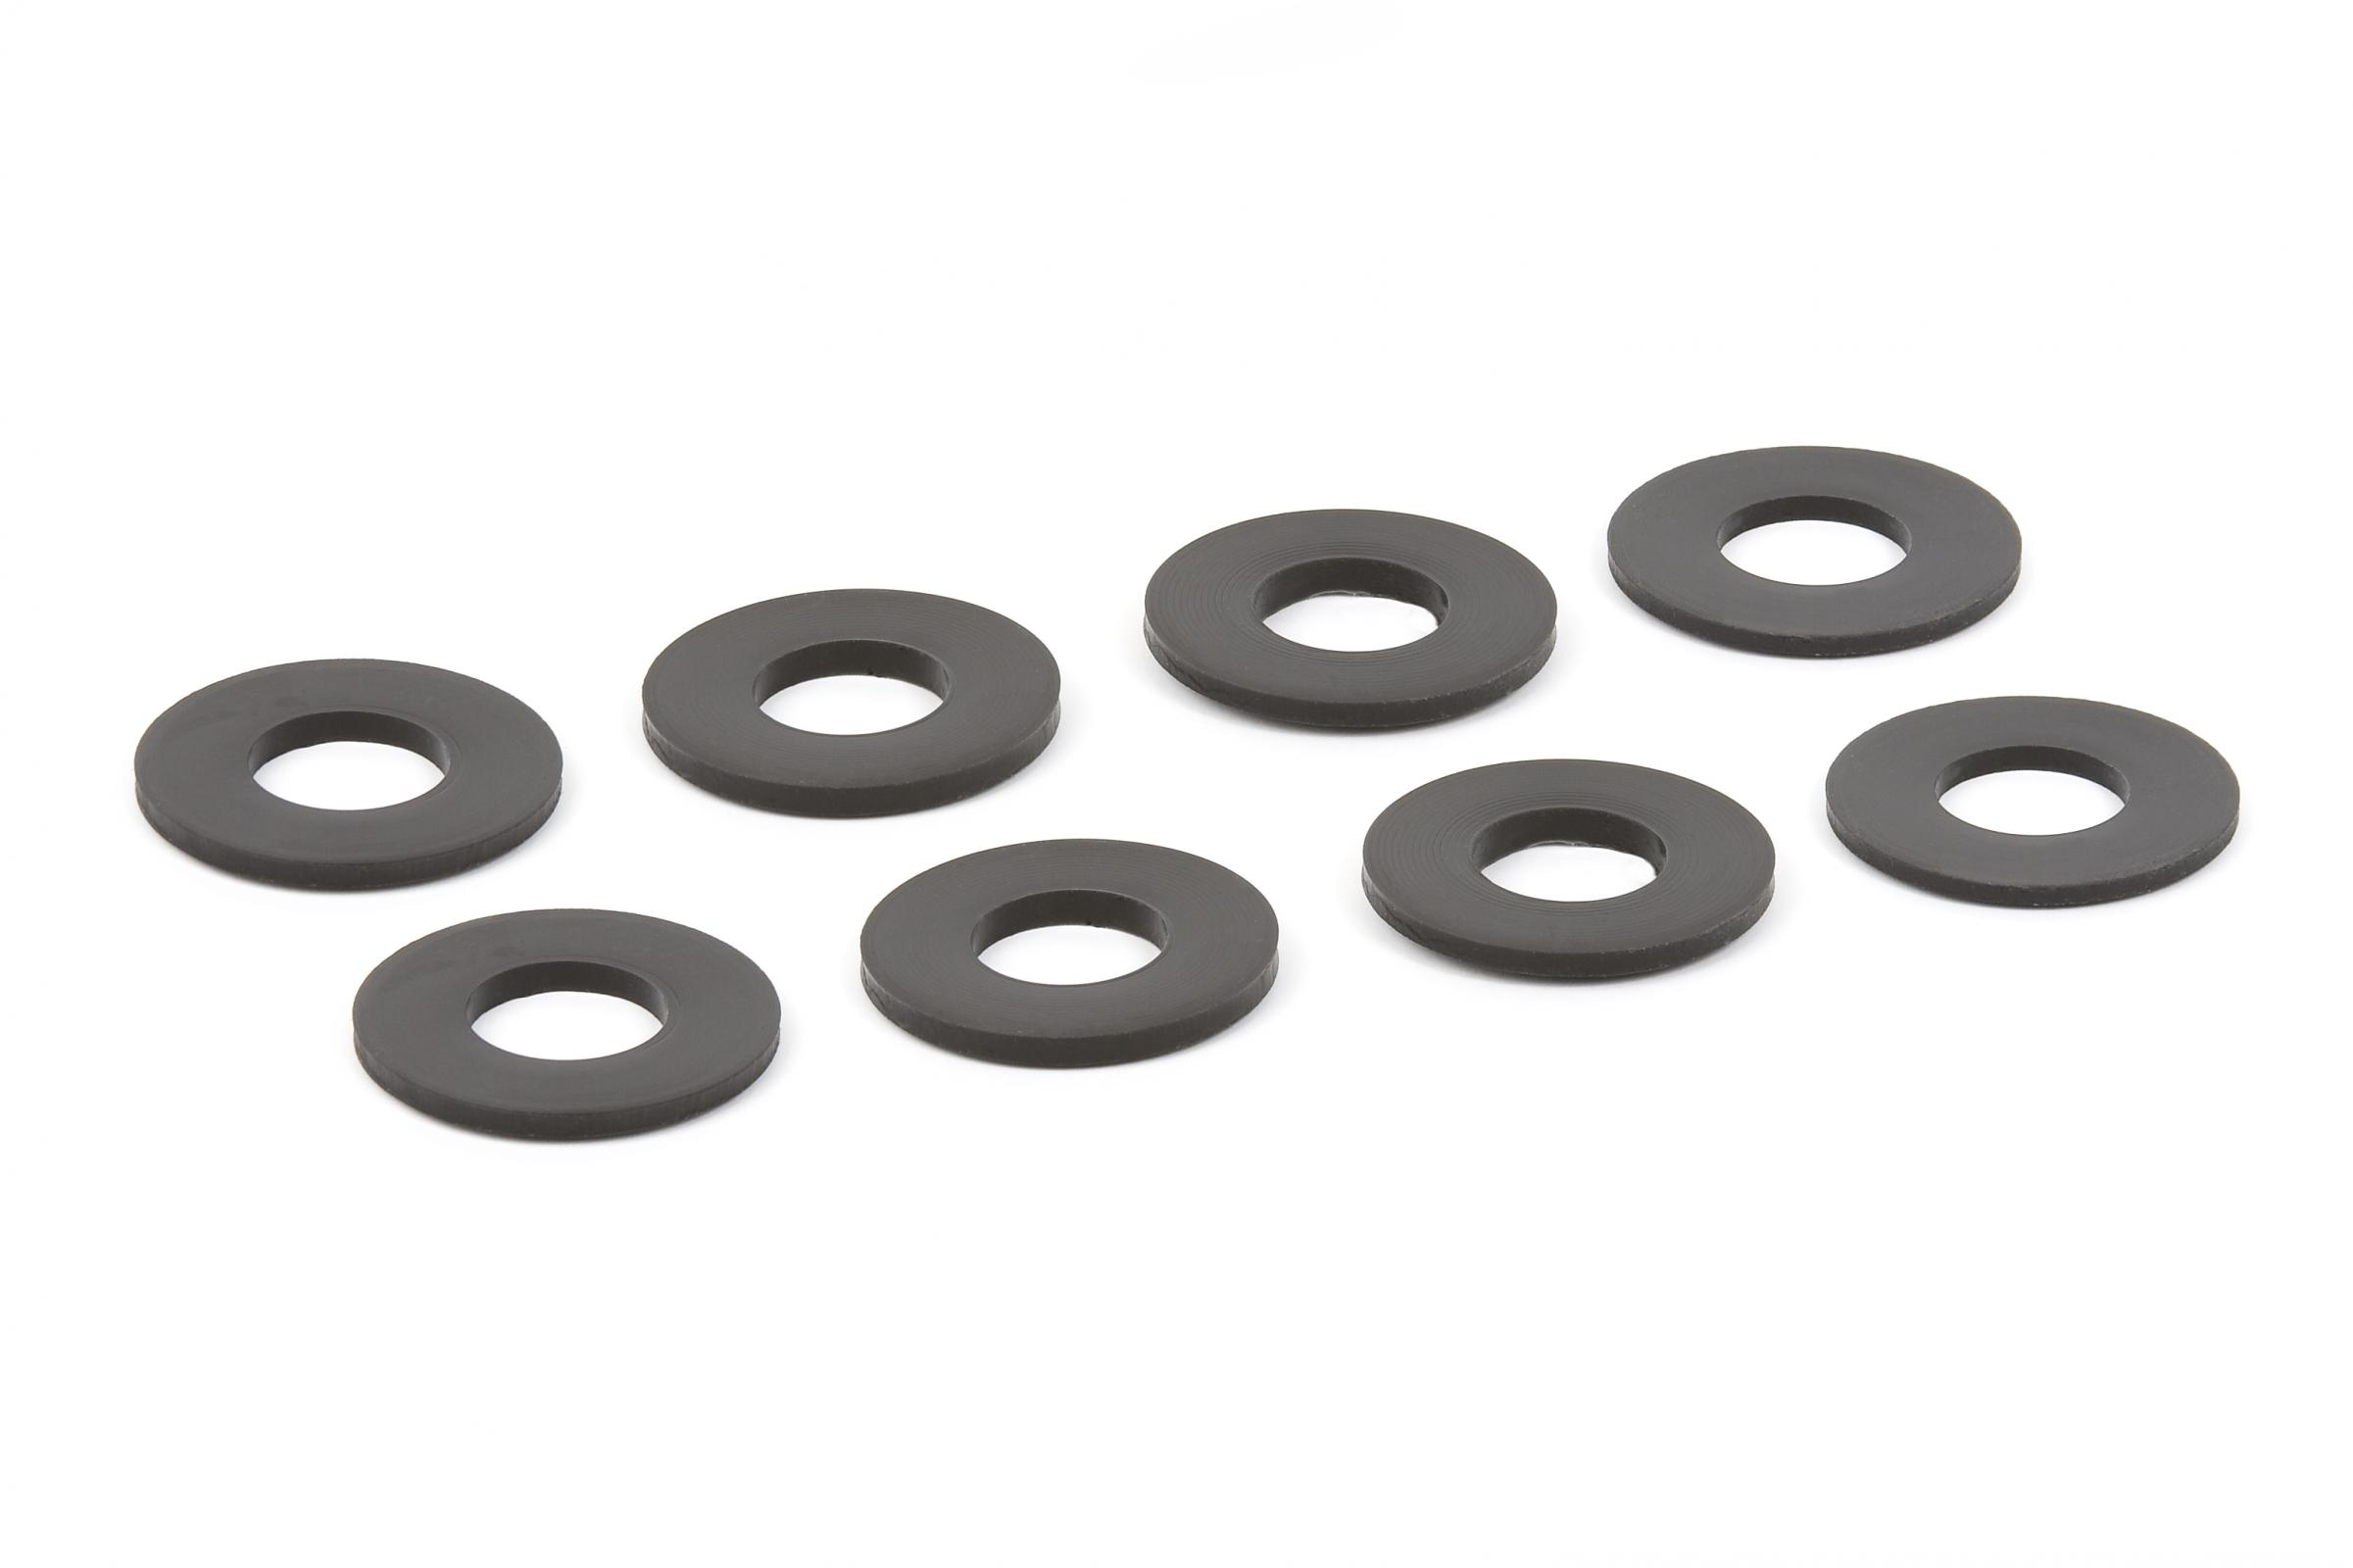 Daystar D-Ring/Shackle Washers (SET OF 8)